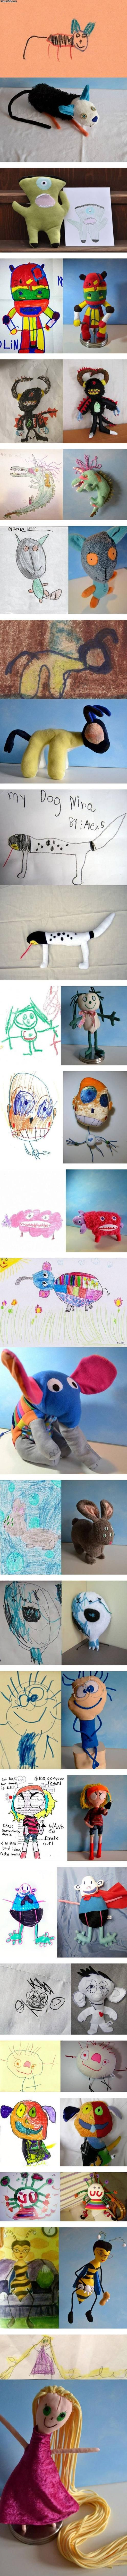 If children's drawings were made into toys...